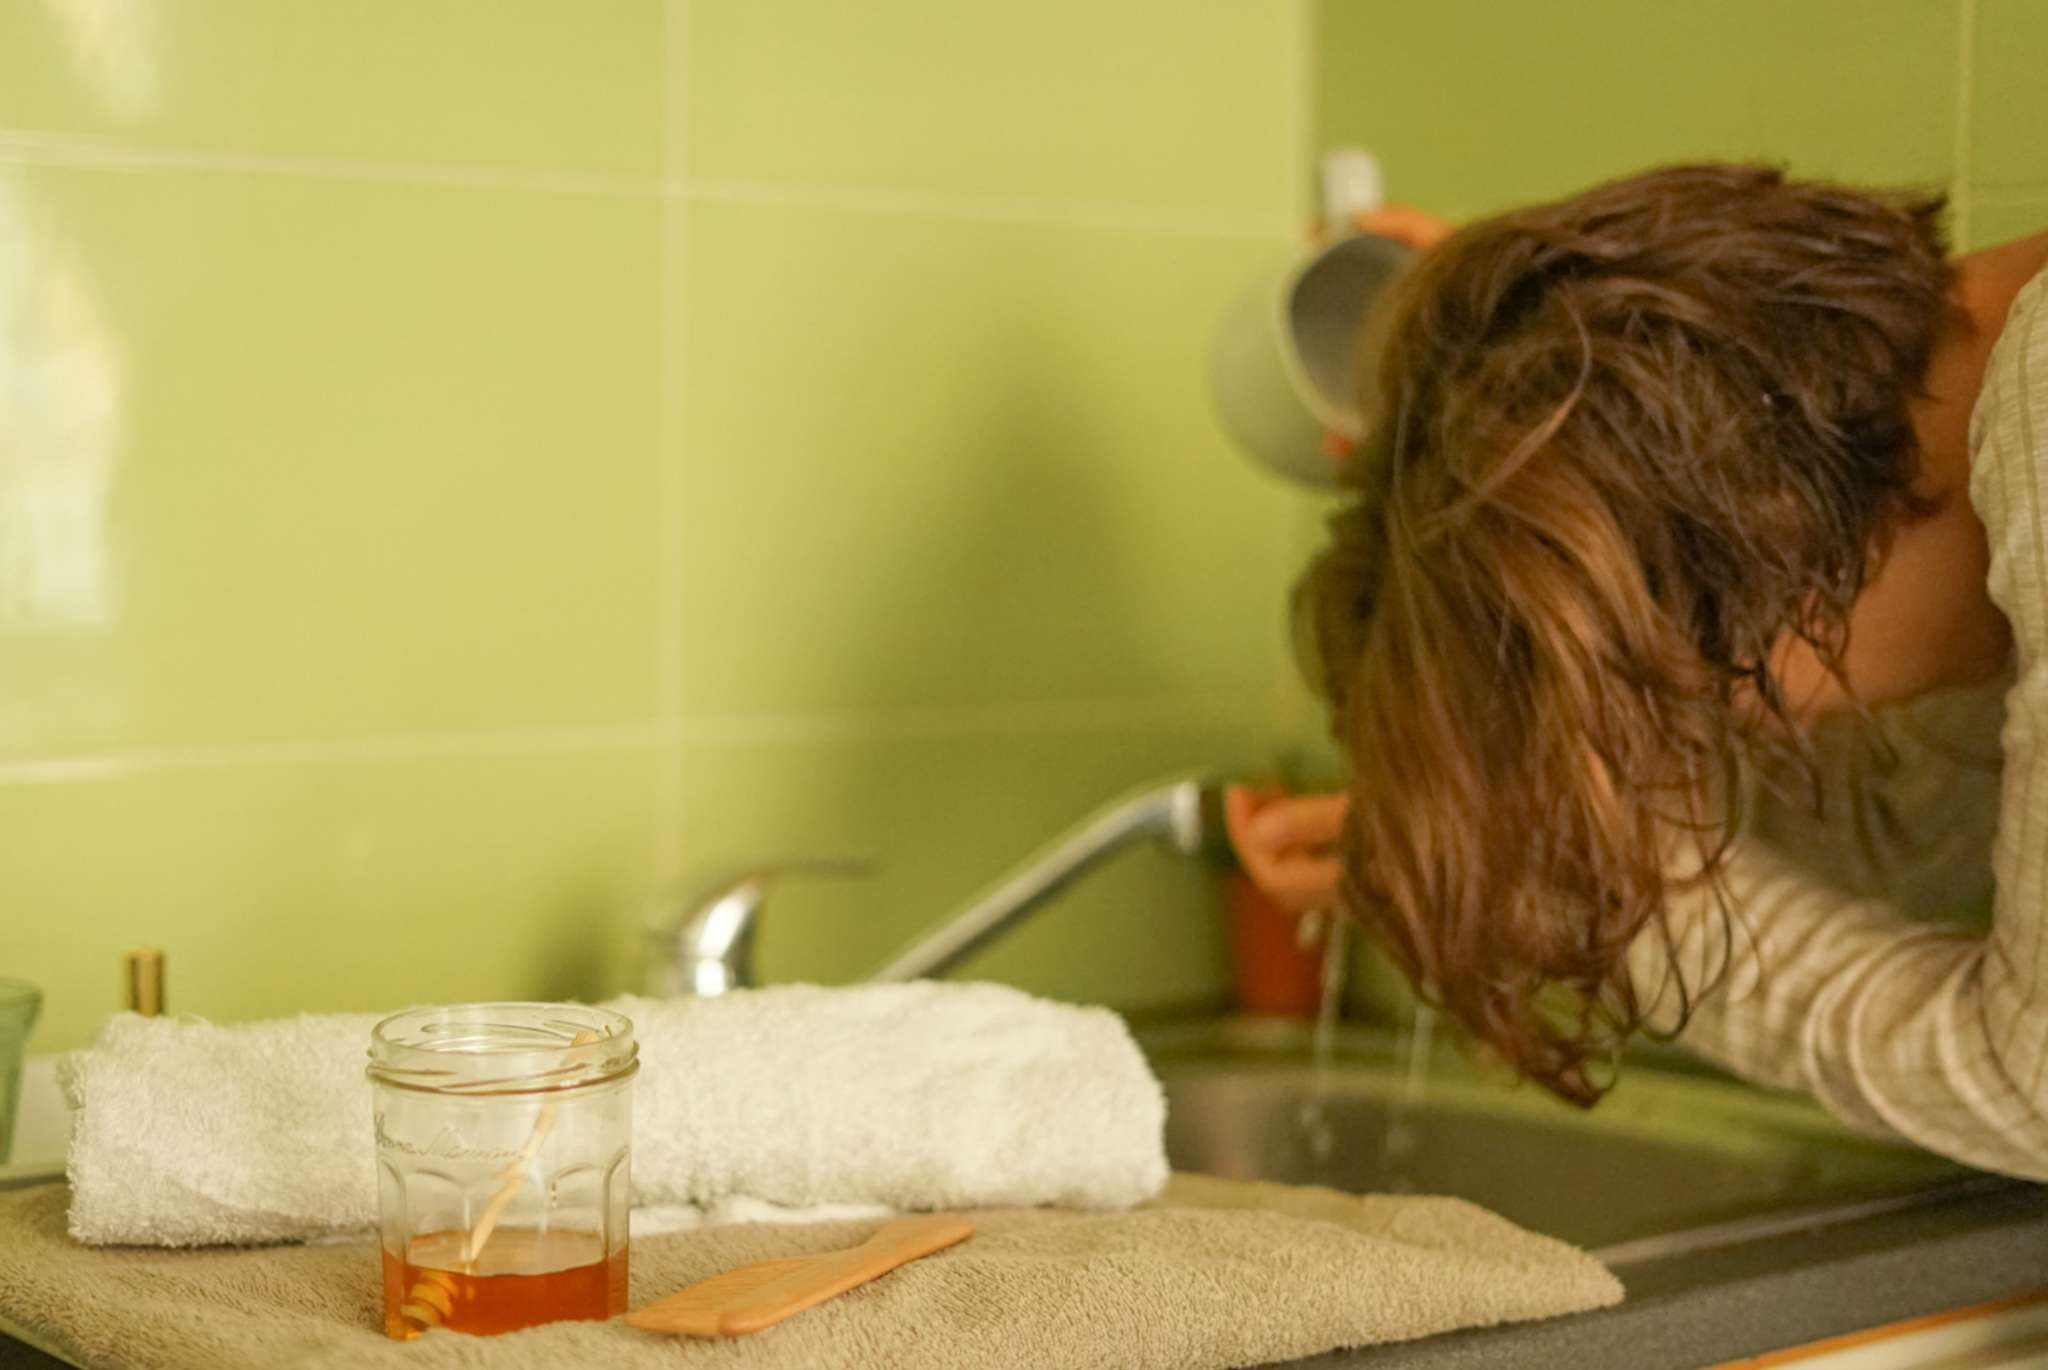 women bends overs kitchen sink and washes hair with honey